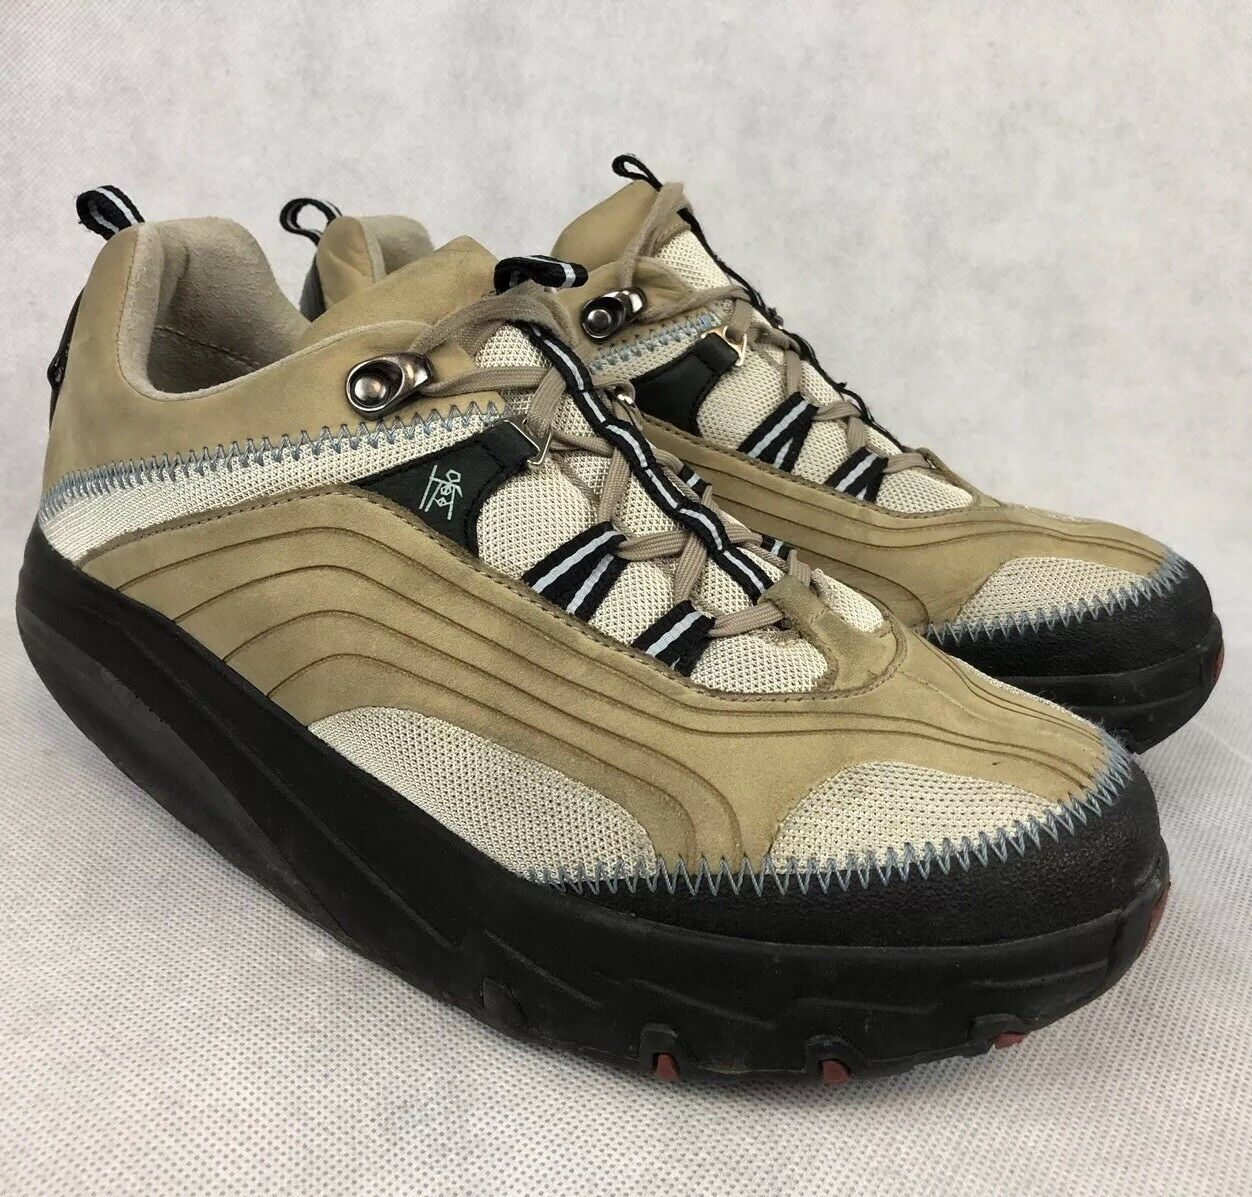 MBT Chapa Stone Womens 9.5 Orthopedic Toning Walking Leather shoes